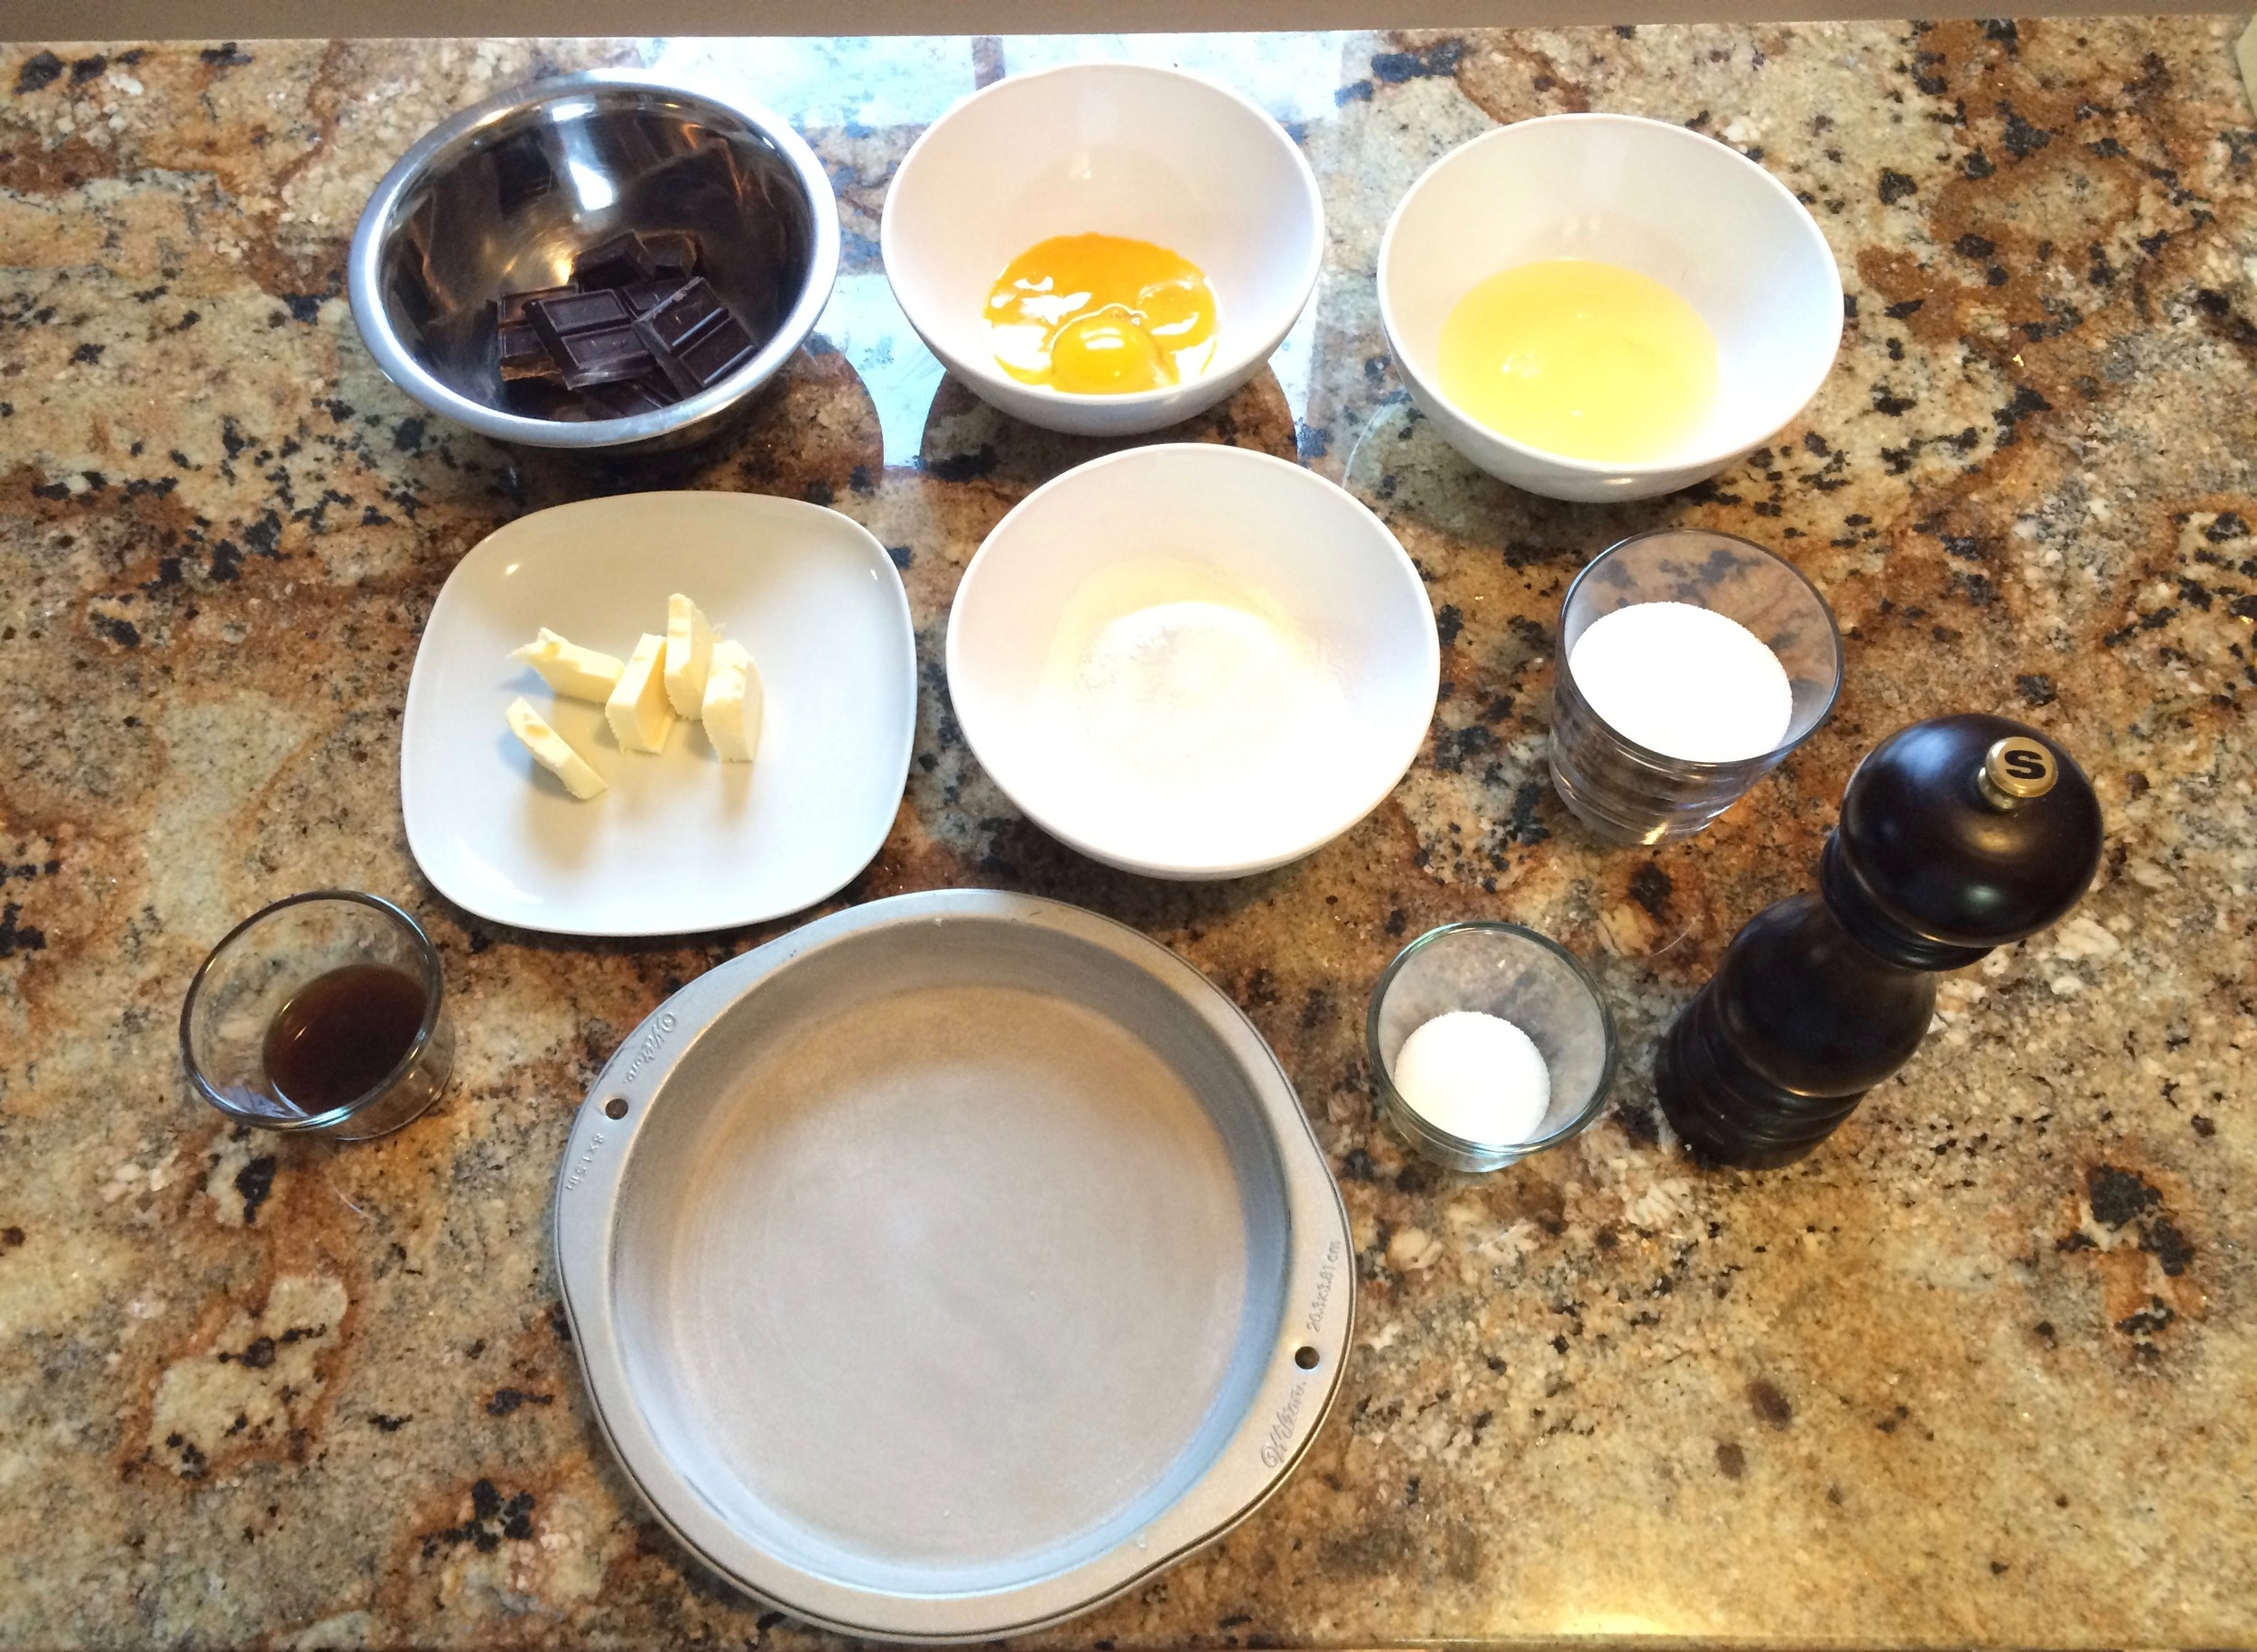 Lay them all out, remember that the butter and egg whites have to be at room temperature.